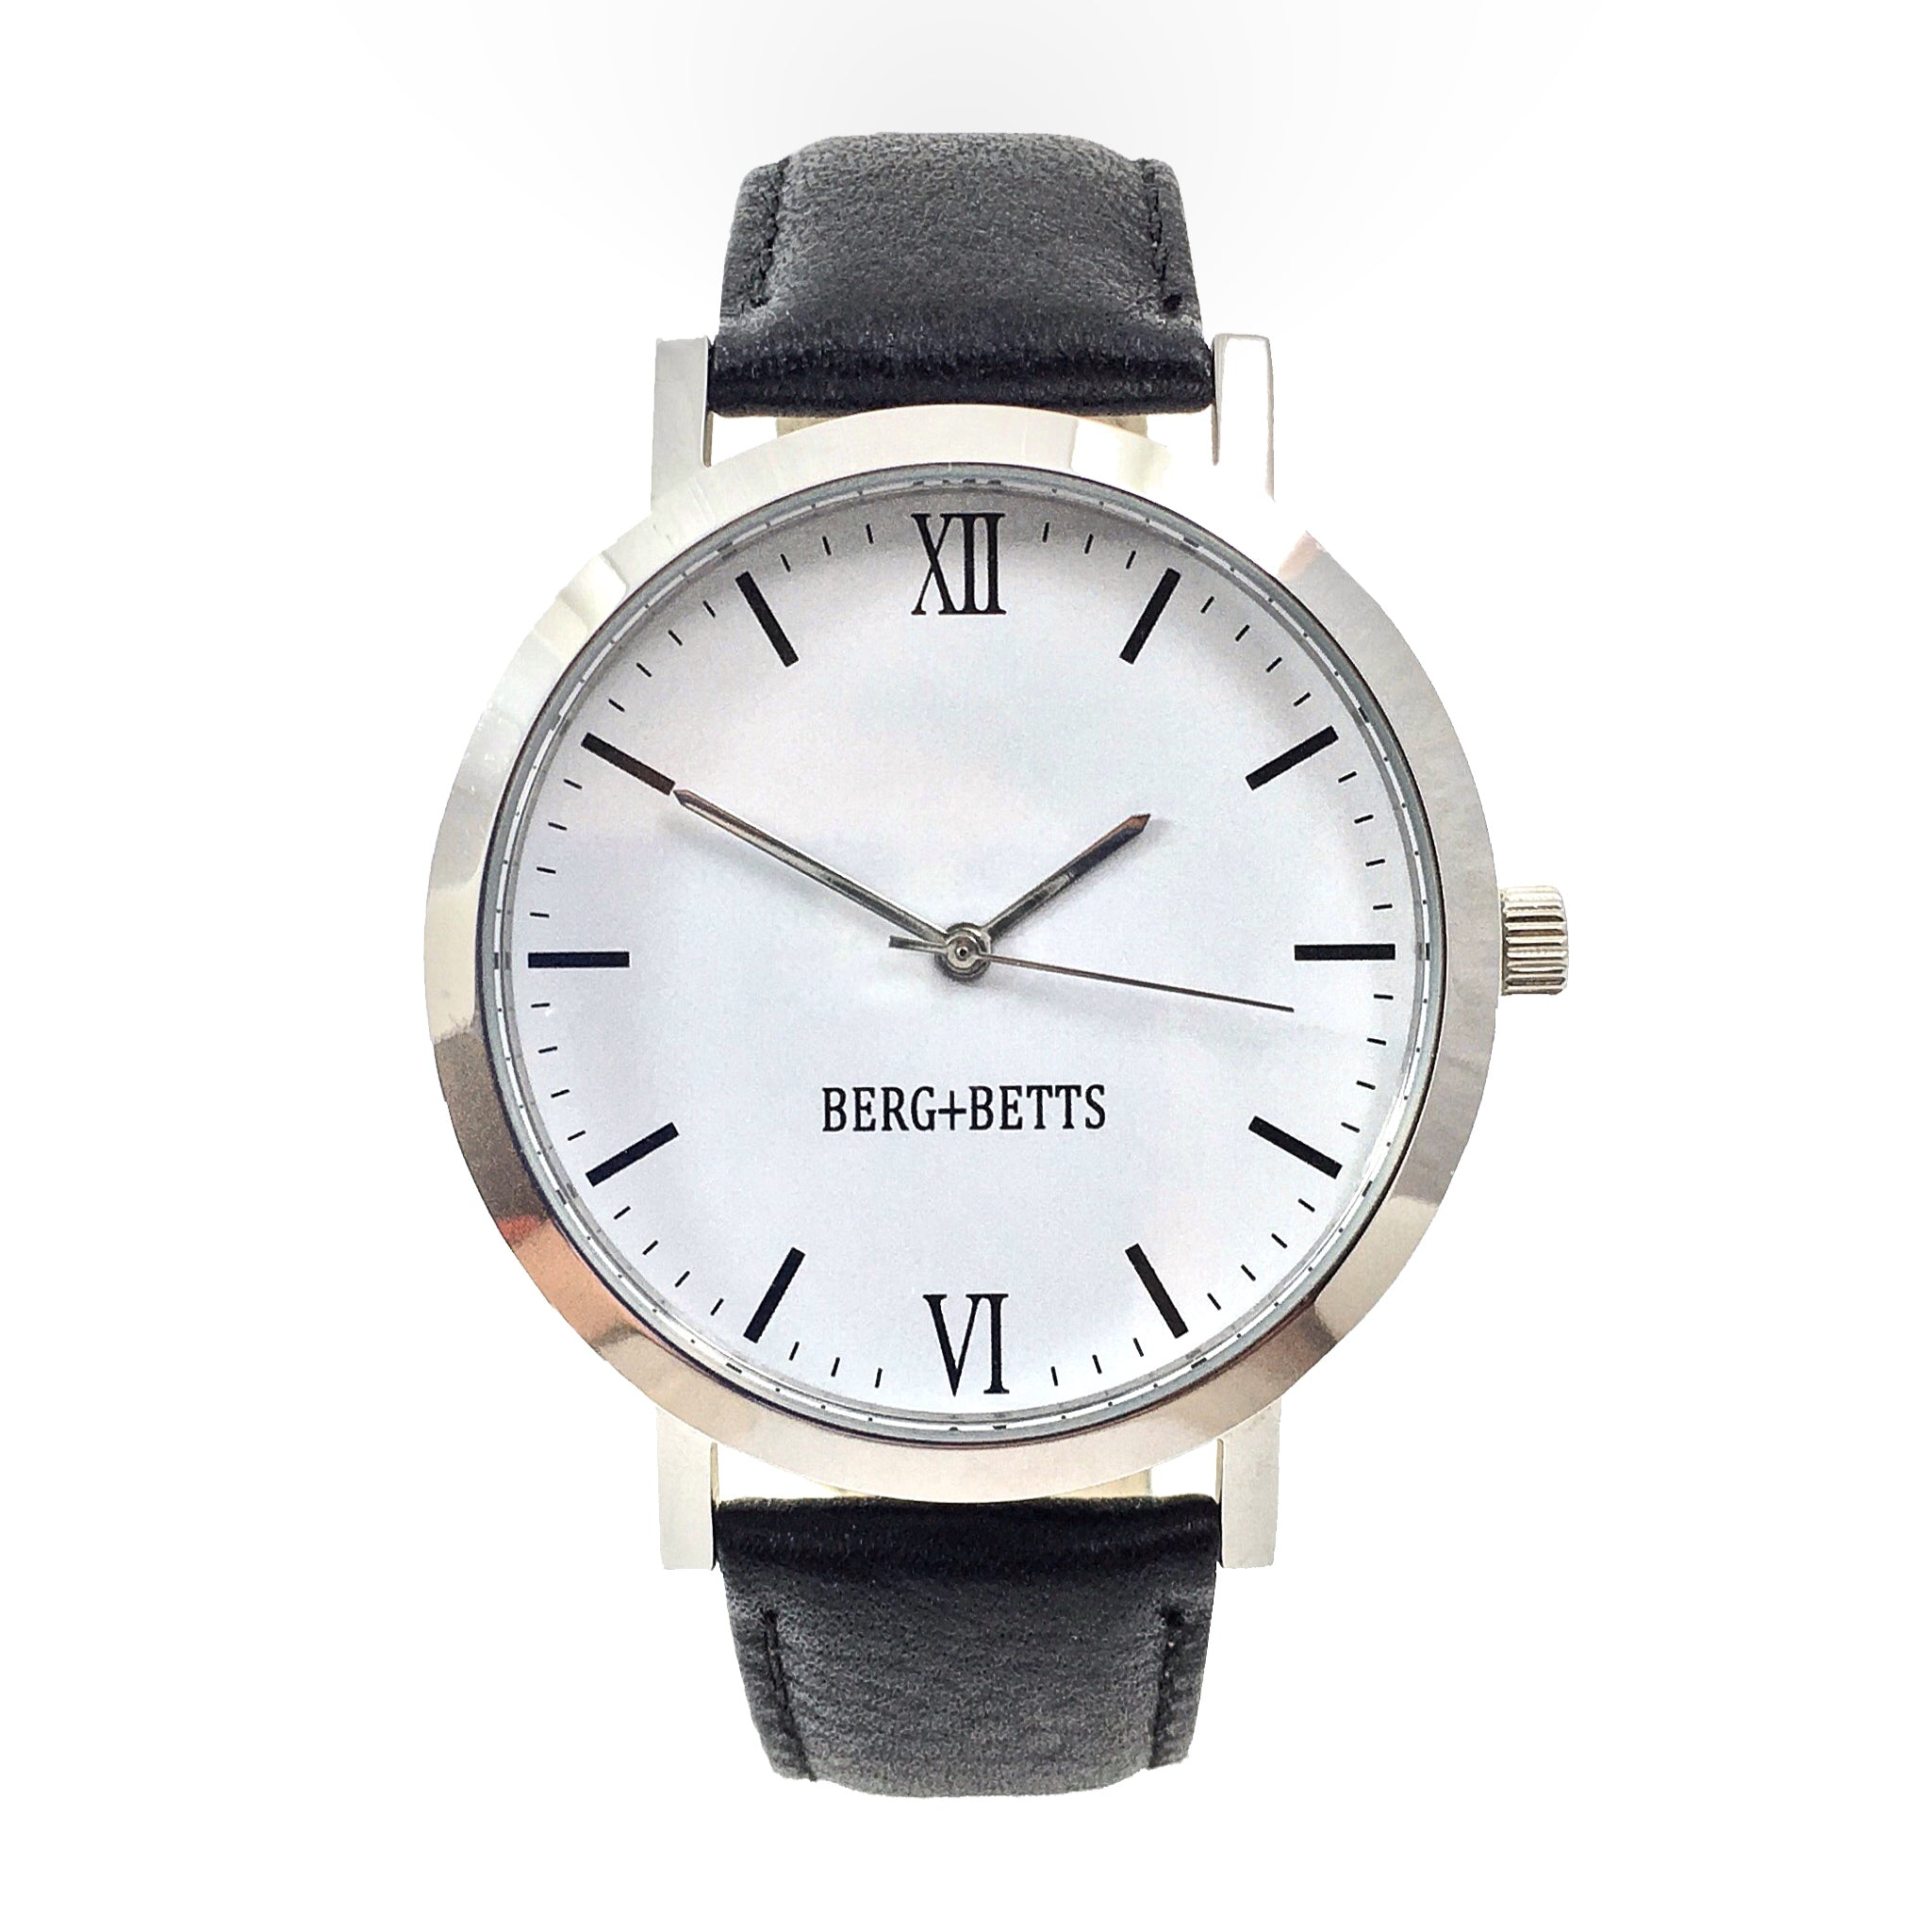 Unisex watches from BERG+BETTS are sustainable and ethically made